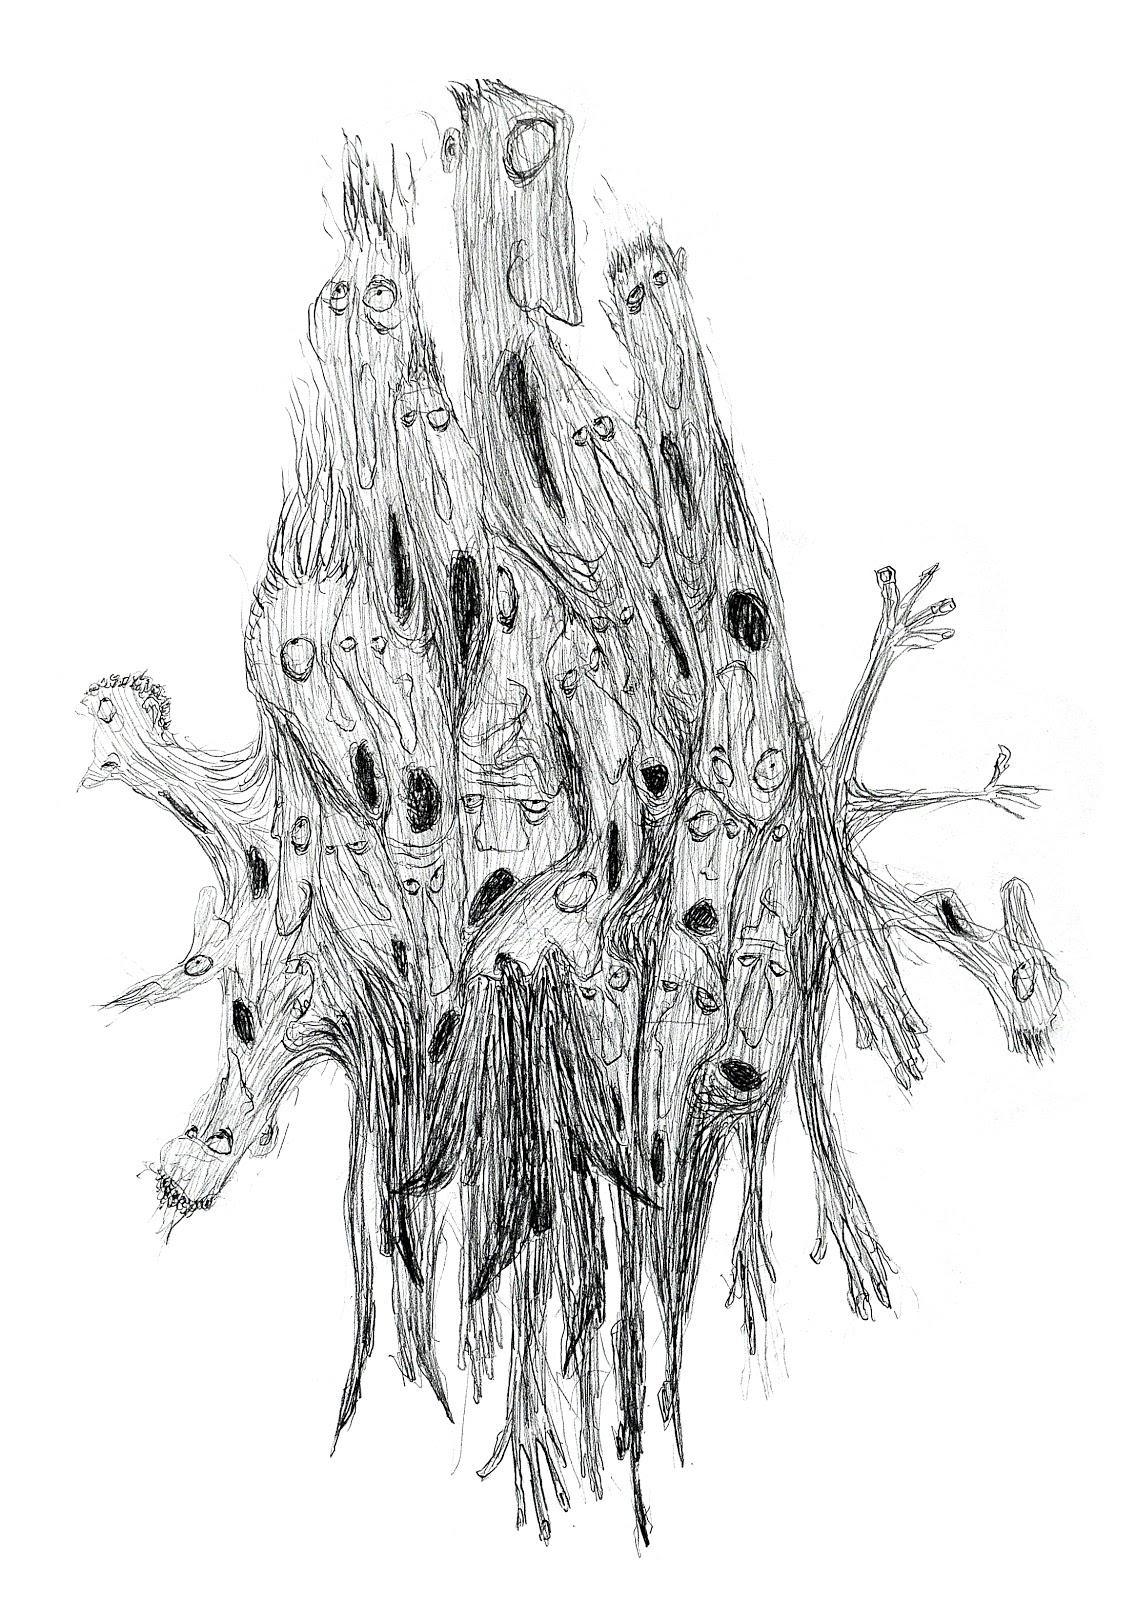 099b-paranorman-concept-art-character-design--Group_of_Ghosts_8.jpg